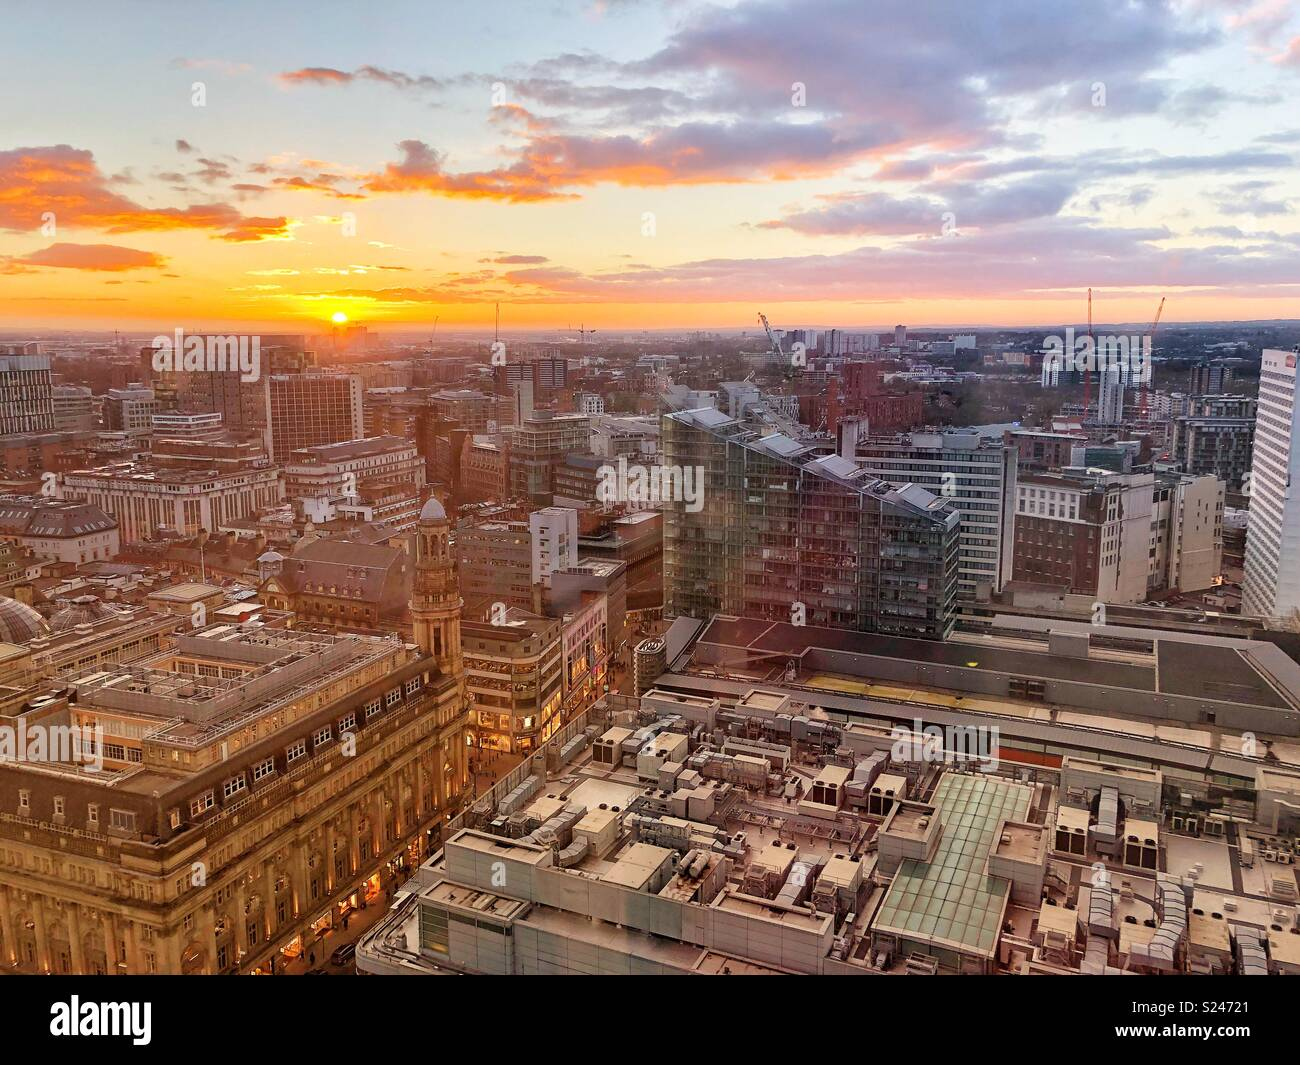 Sunset over Manchester City centre - Stock Image